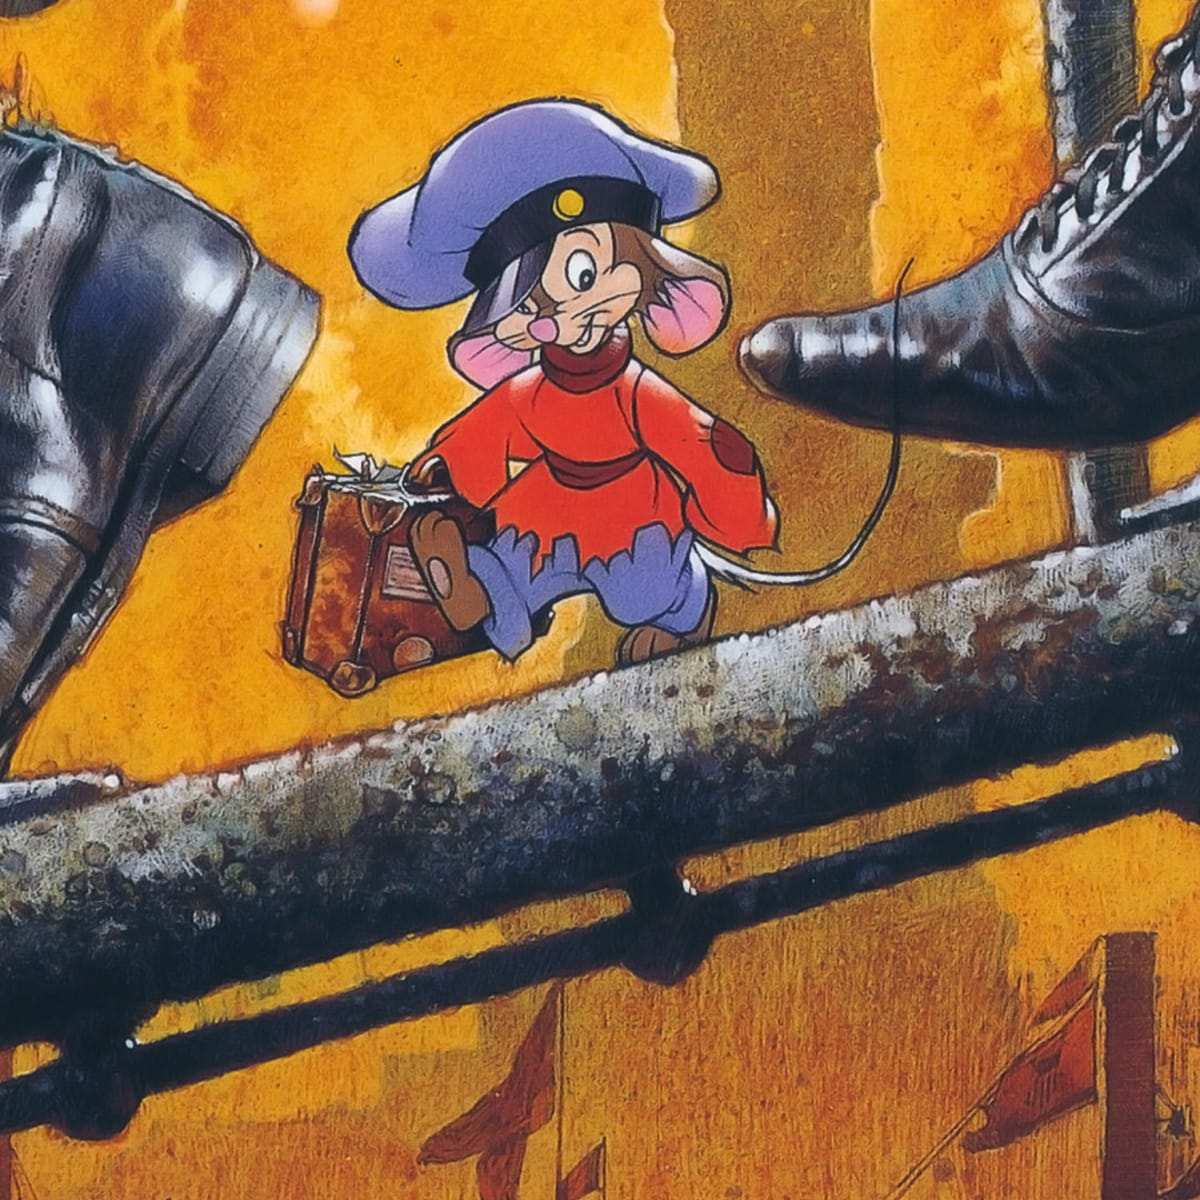 Fievel Mousekewitz from An American Tail